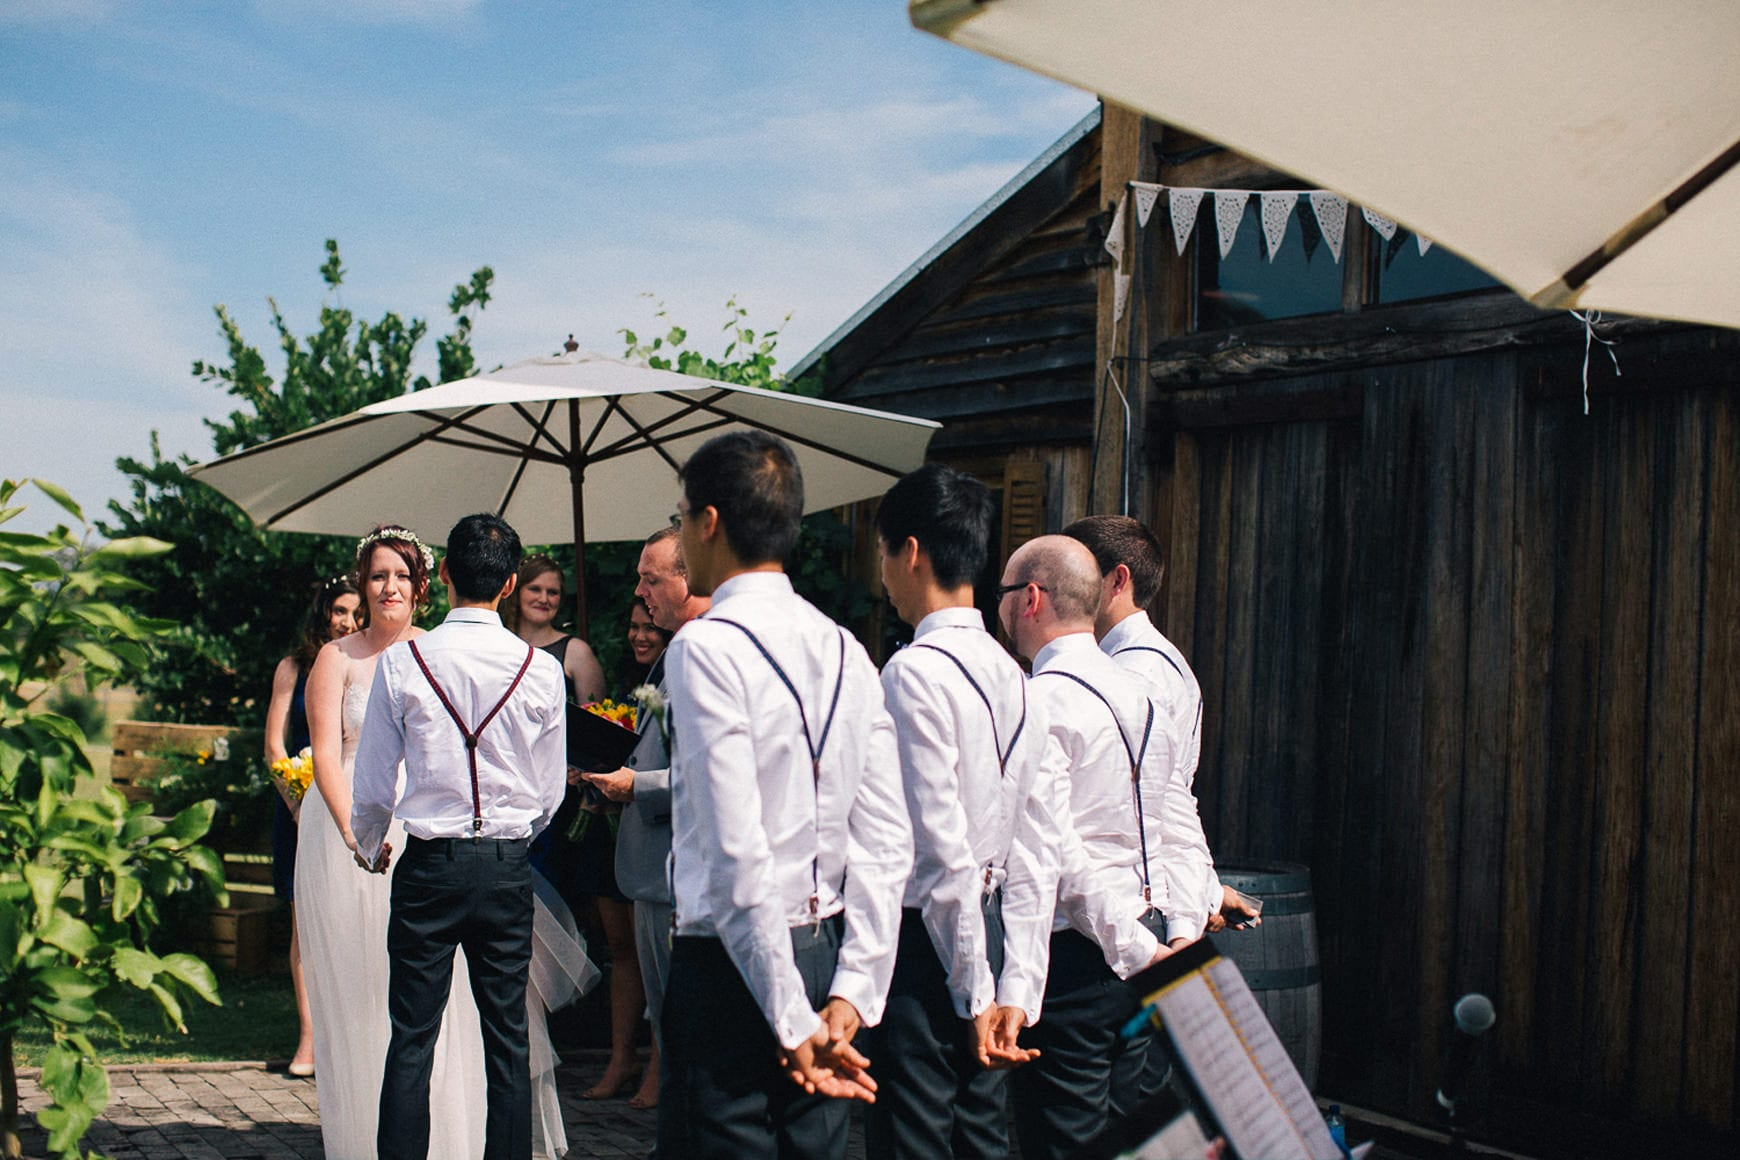 sydney polo club barn wedding vigsel utomhus